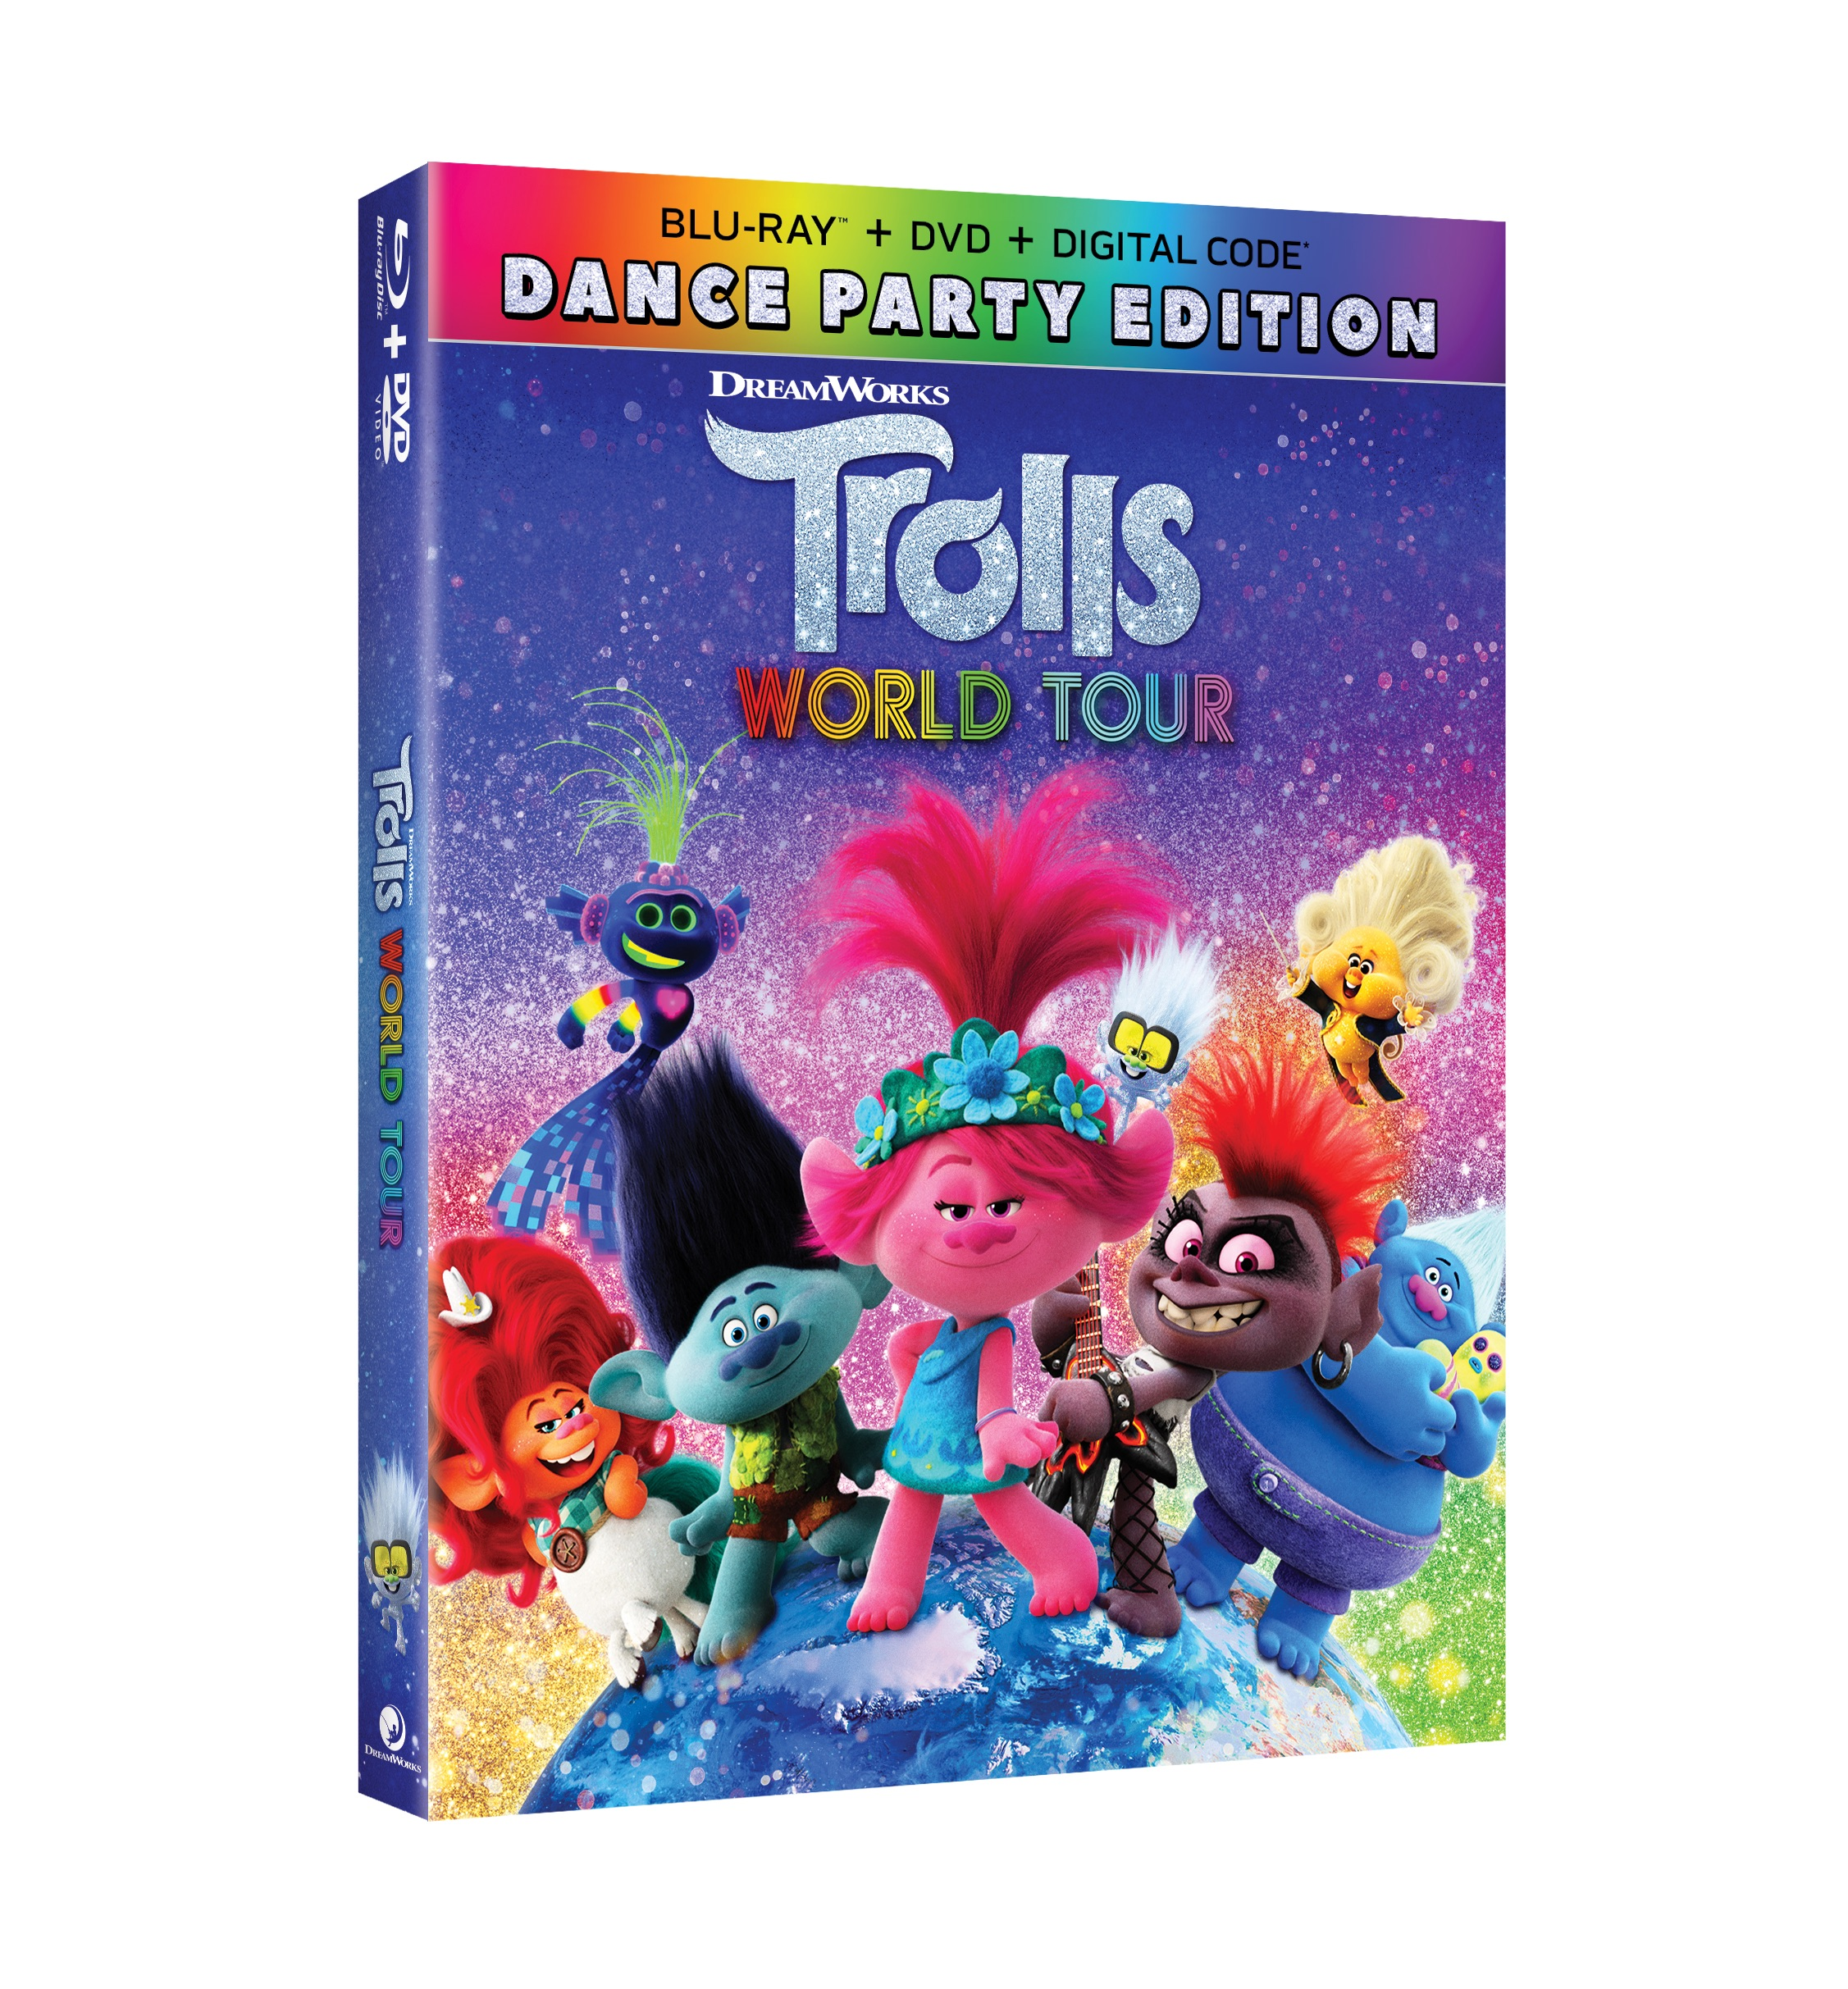 Win TROLLS WORLD TOUR on Blu-Ray